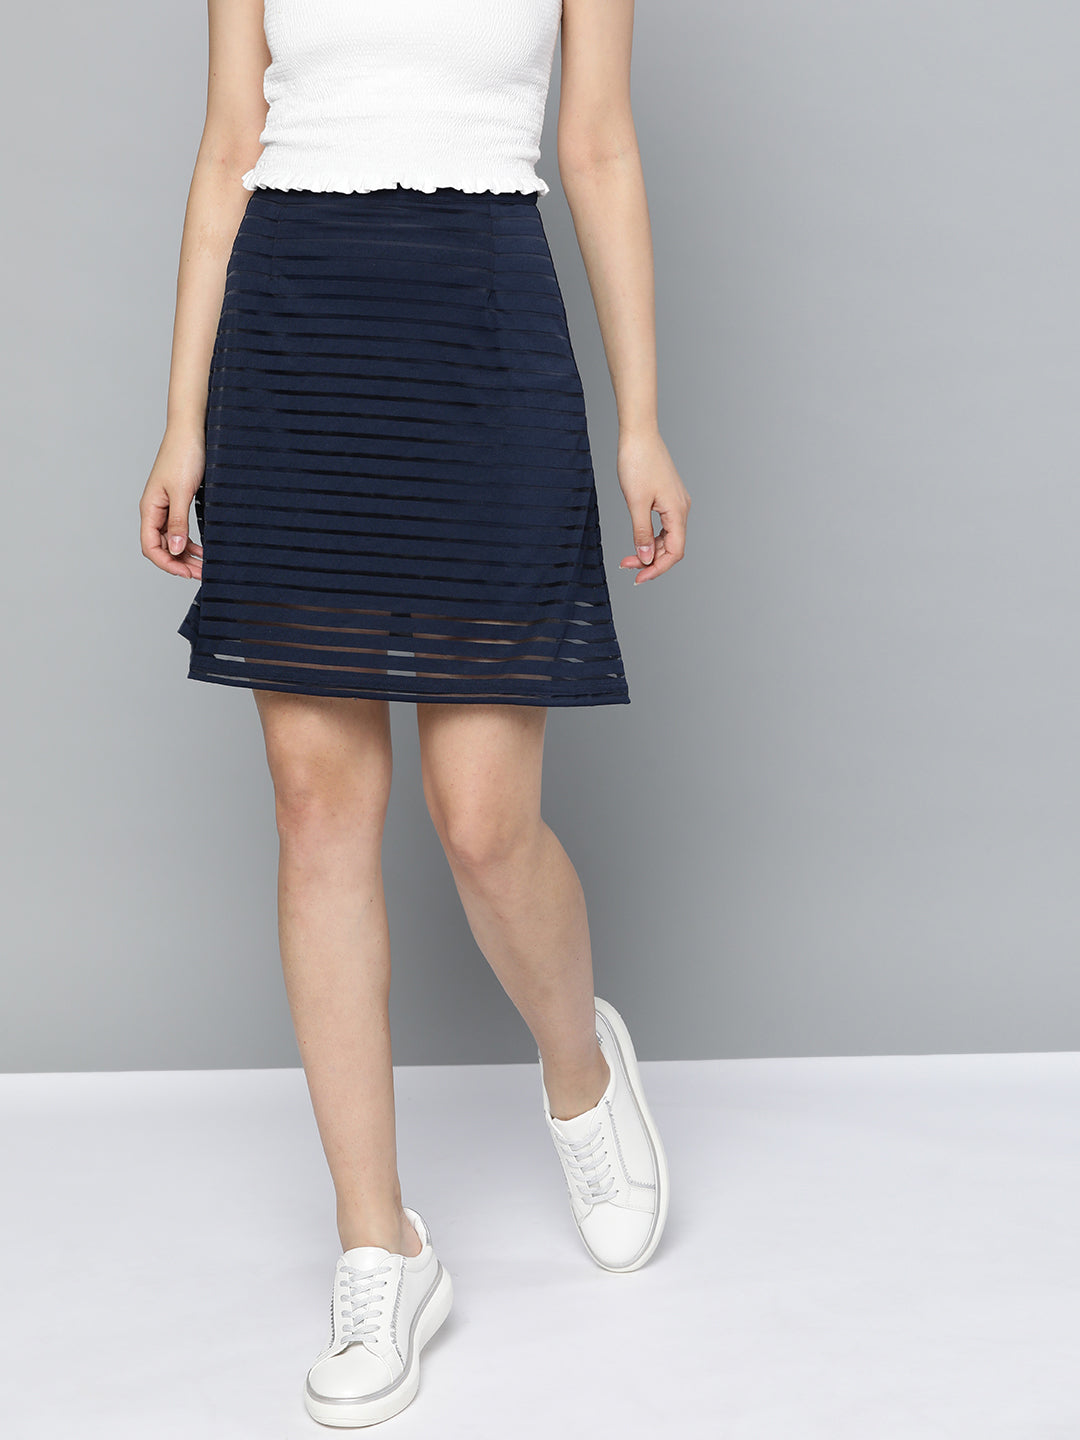 Stripe On Stripe Skirt